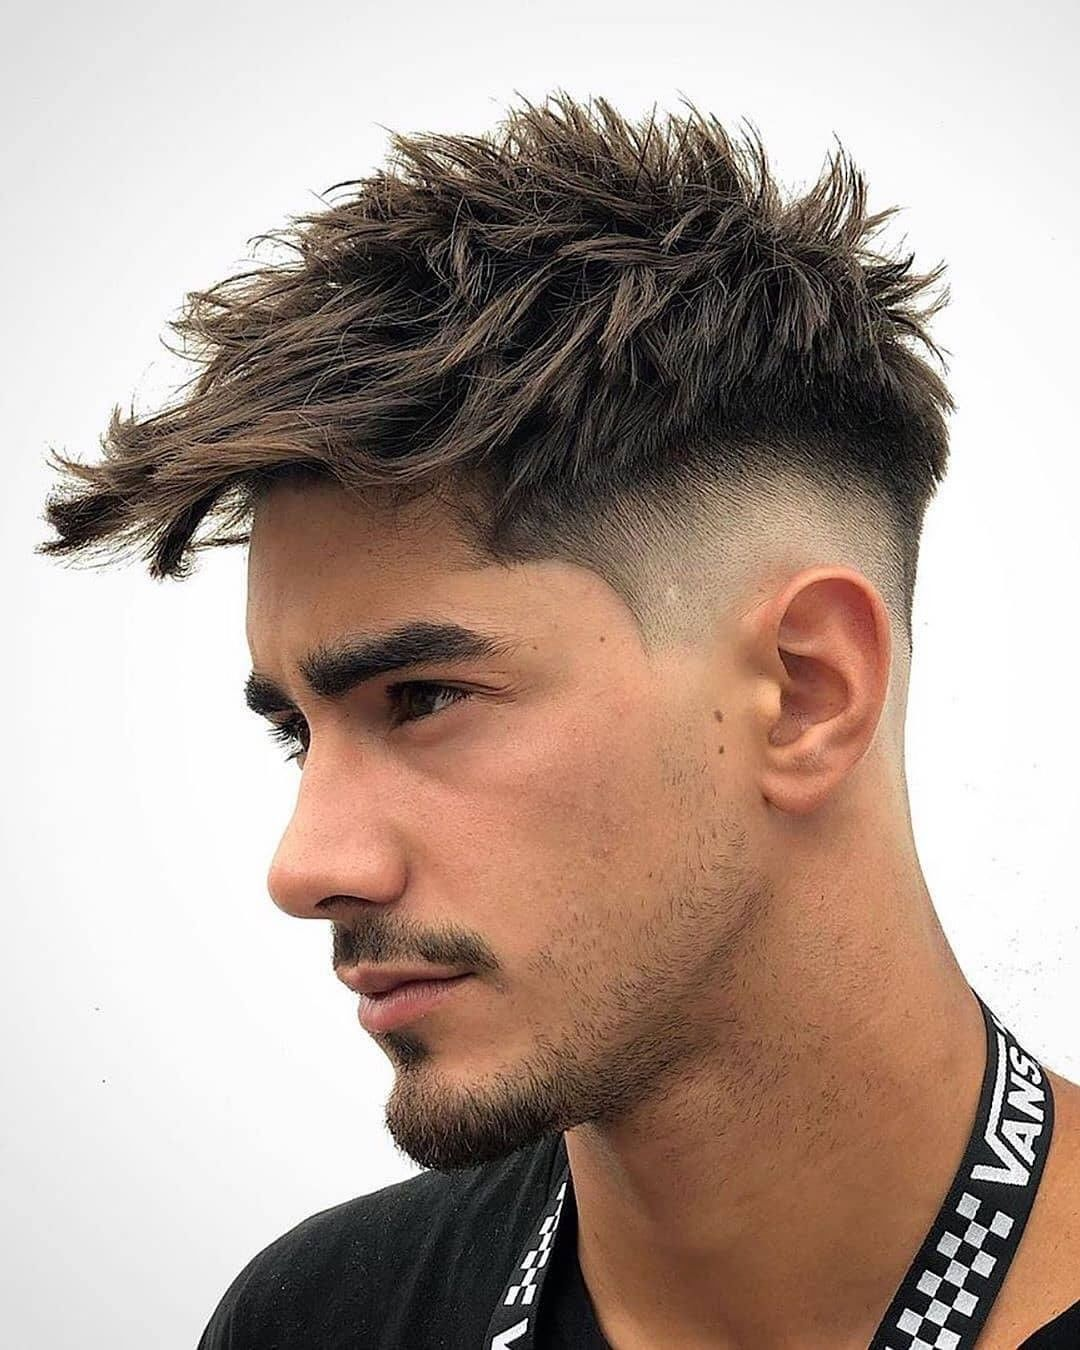 Men S Hairstyle Goals On Instagram Yes Or No Comment Below Follow Menshairstylegoals Menstagra In 2020 Gents Hair Style Mens Hairstyles Haircuts For Men